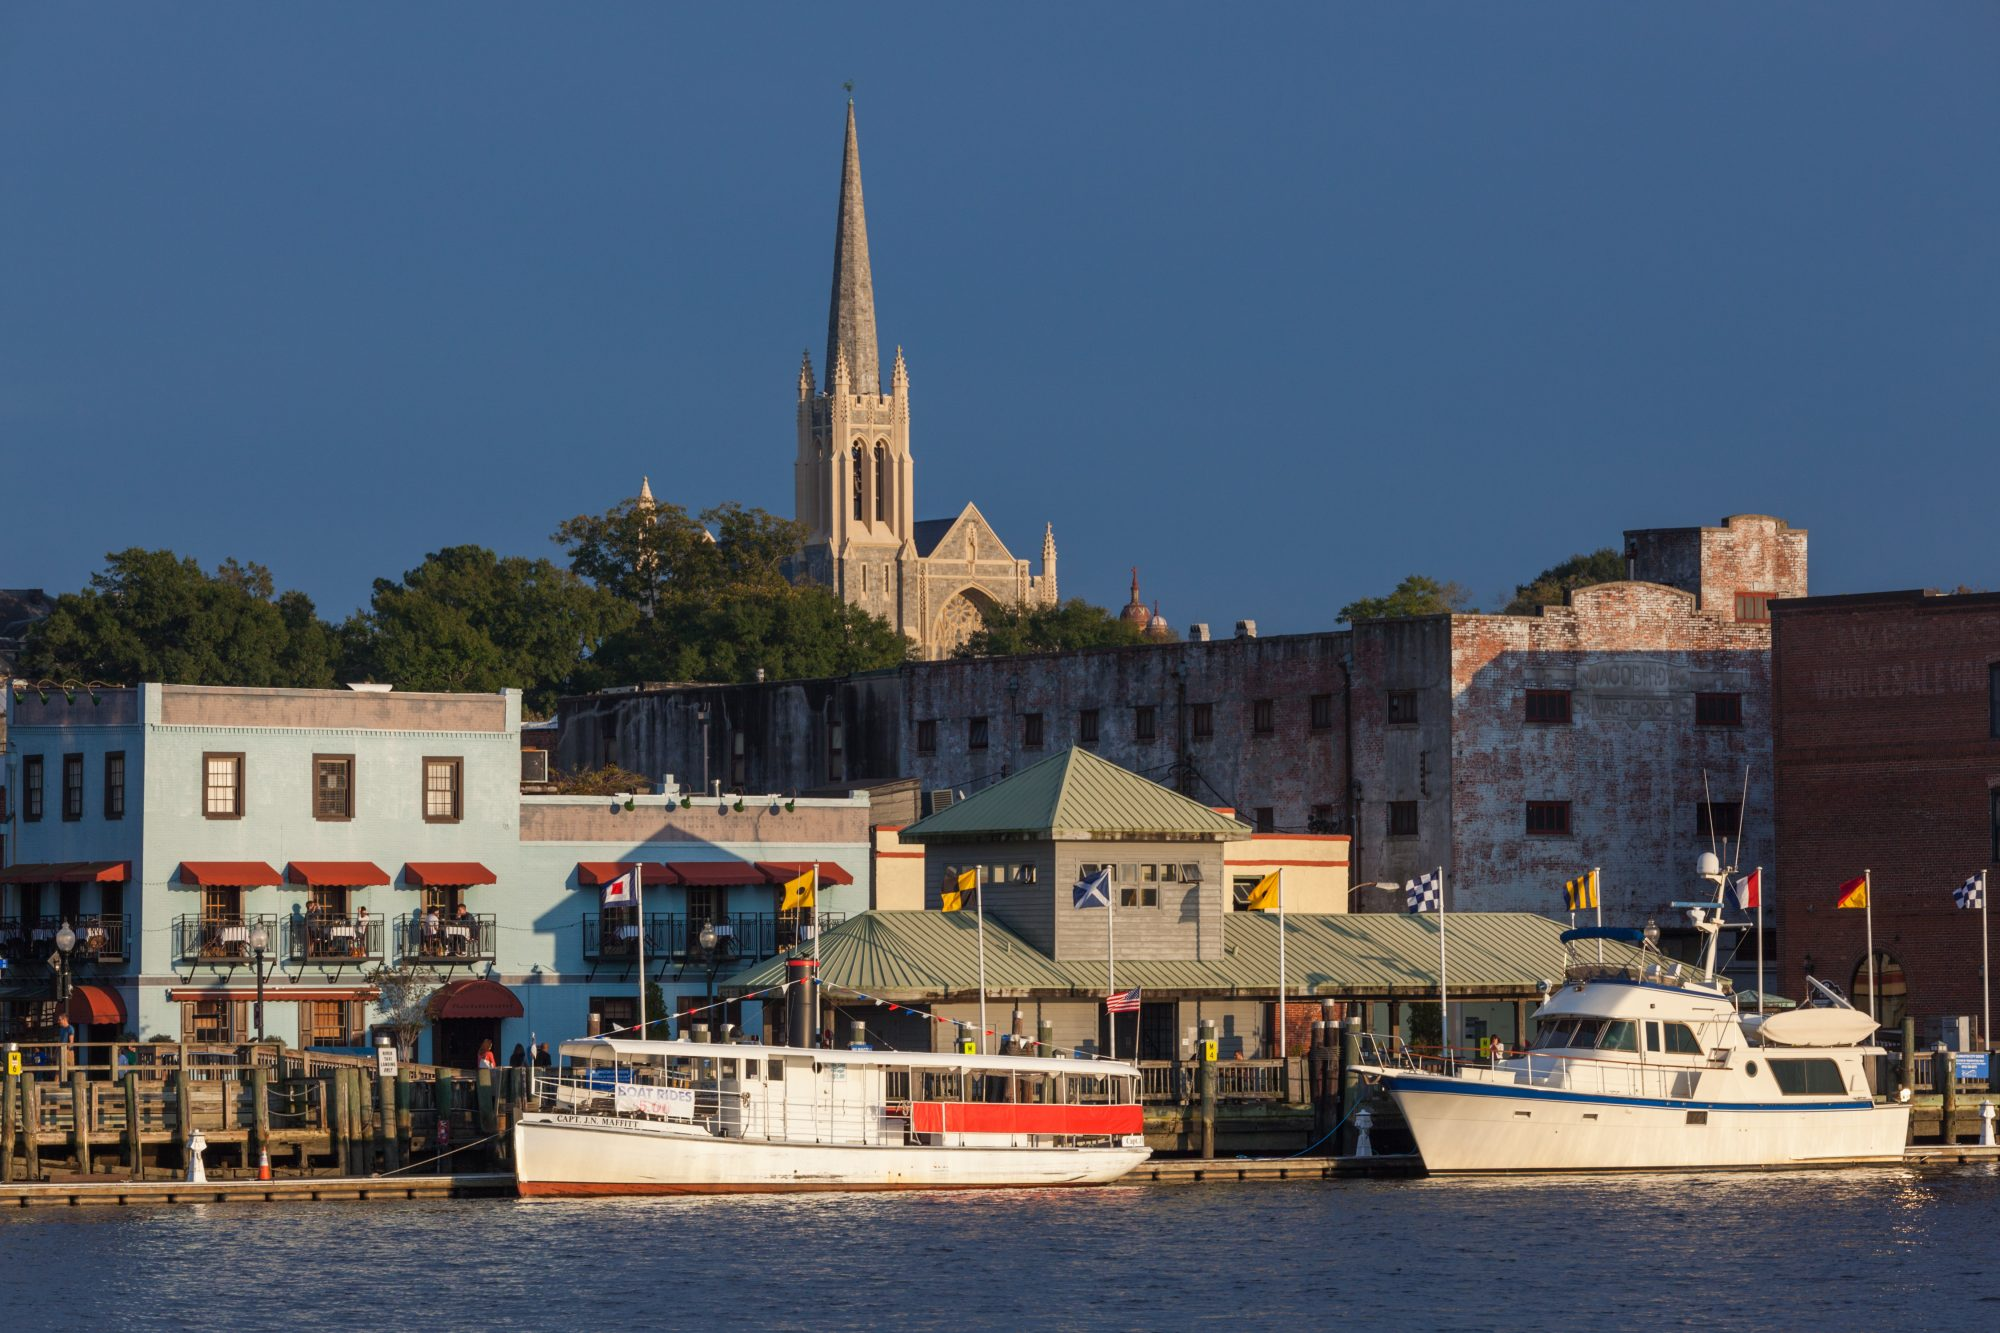 12. Wilmington, North Carolina